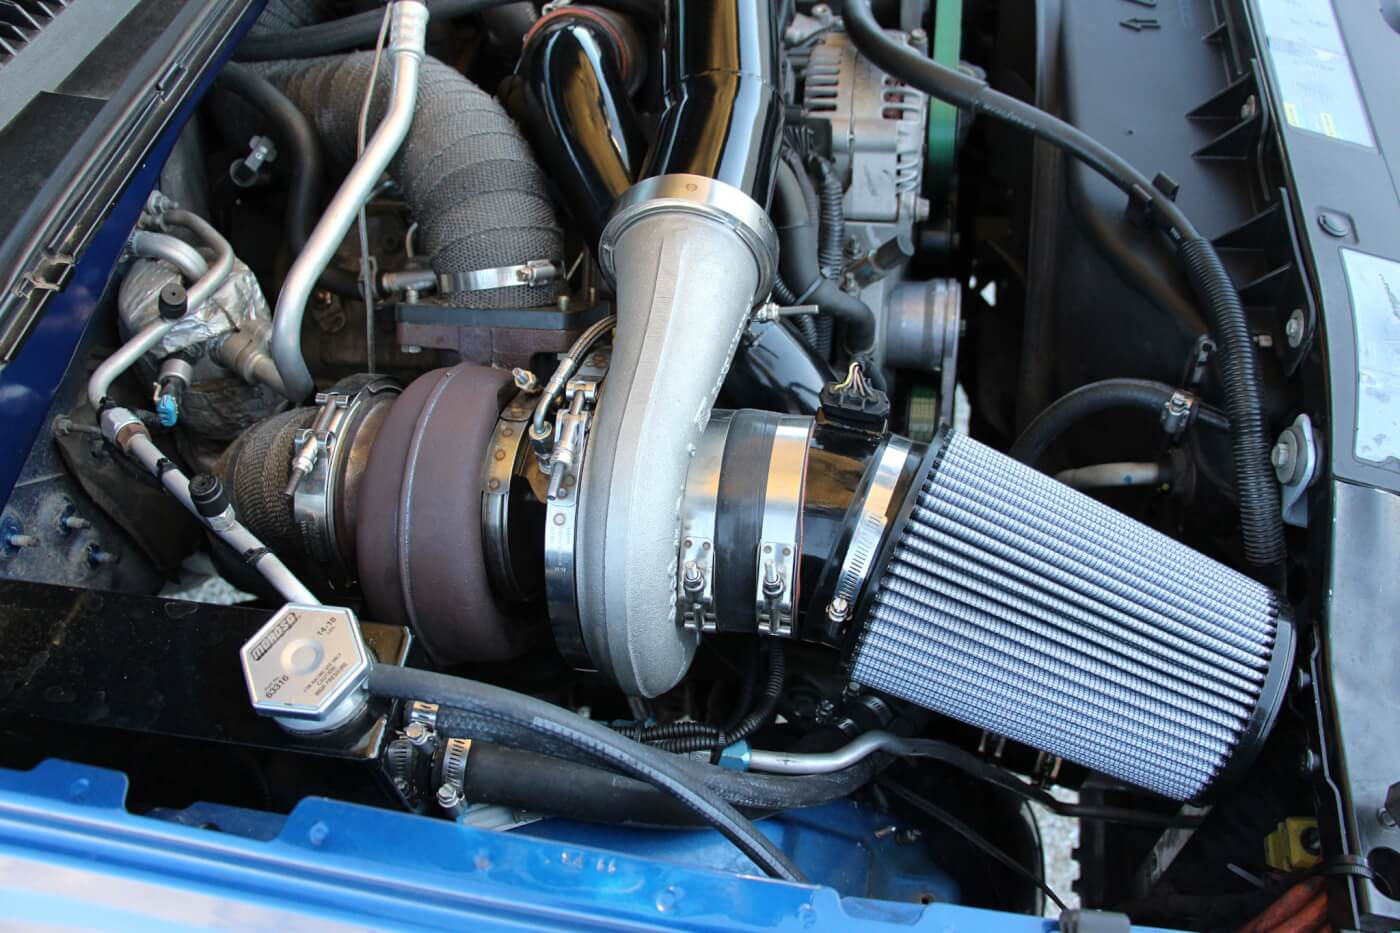 Kicking the passenger side battery out of its original location is this billet S480. It features the common 96mm turbine wheel, T6 flange, and 1.32 A/R turbine housing combination. In conjunction with the billet S366, the compound setup produces between 70-75 psi of boost on the street.